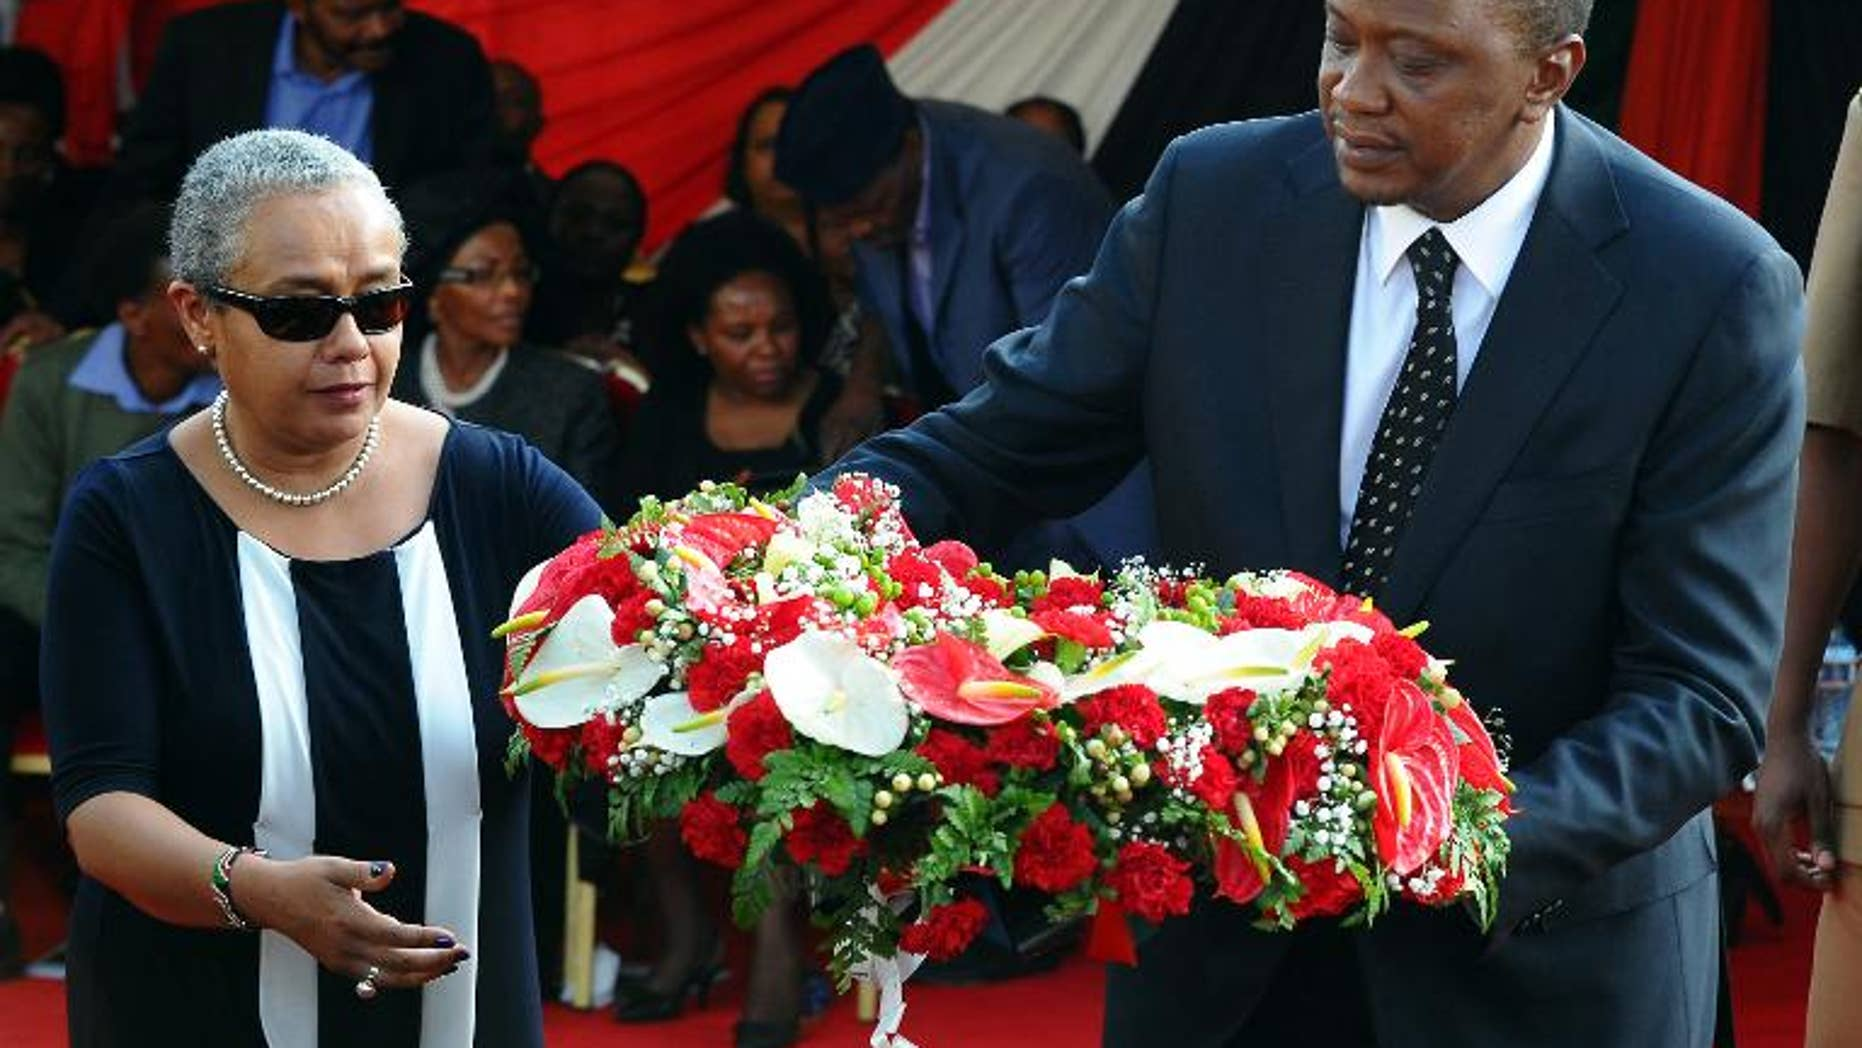 Kenyan President Uhuru Kenyatta and his wife Margaret lay a wreath of flowers during the funeral service of his nephew Mbugua Mwangi and his fiancee Rosemary Wahito in Nairobi on September 27, 2013